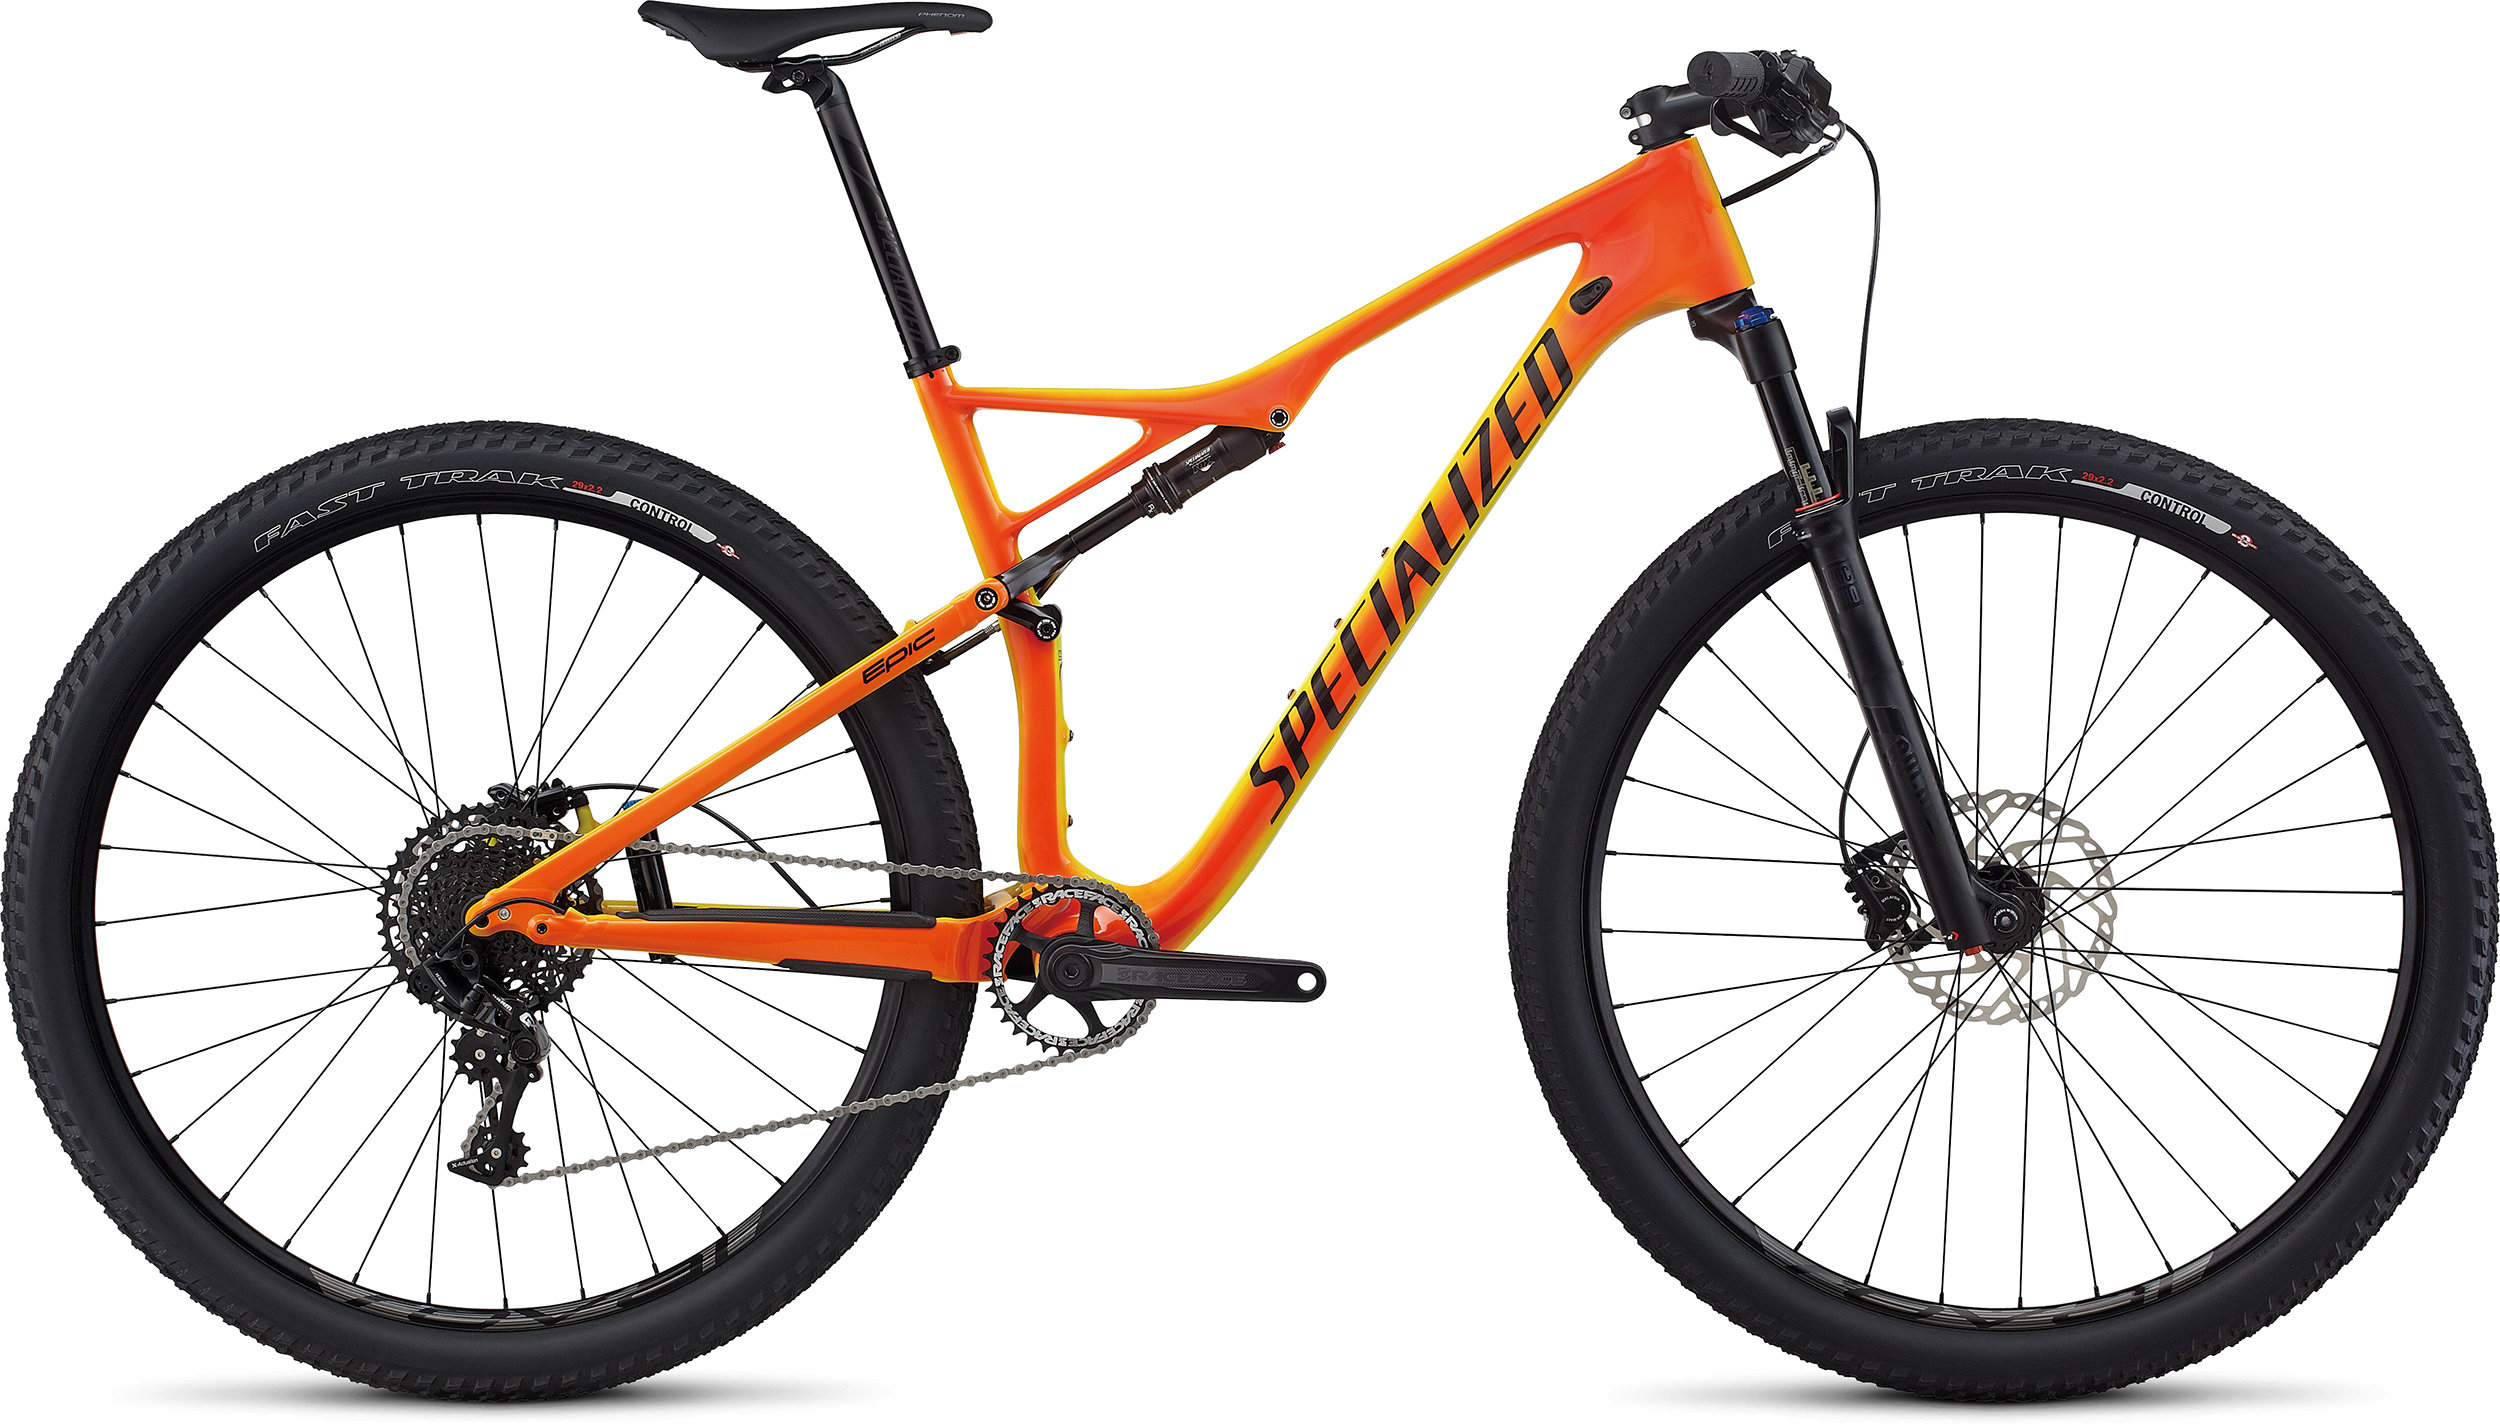 SPECIALIZED EPIC FSR COMP CARBON WC 29 TORCH MMORG S - Bike Maniac